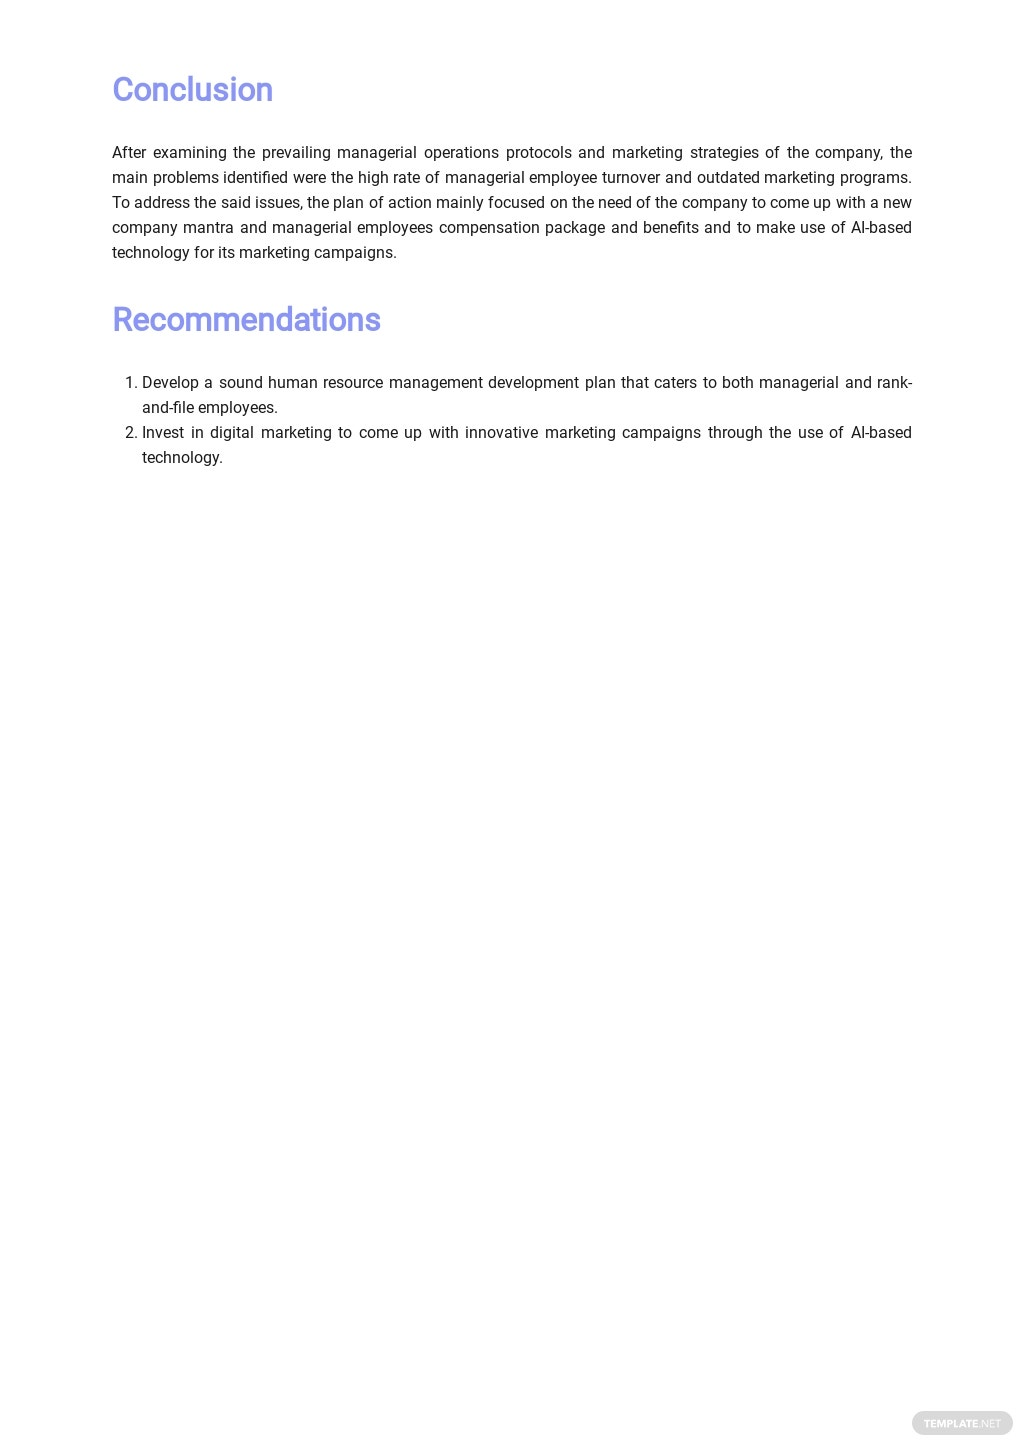 Corporate Consulting Report Template 3.jpe